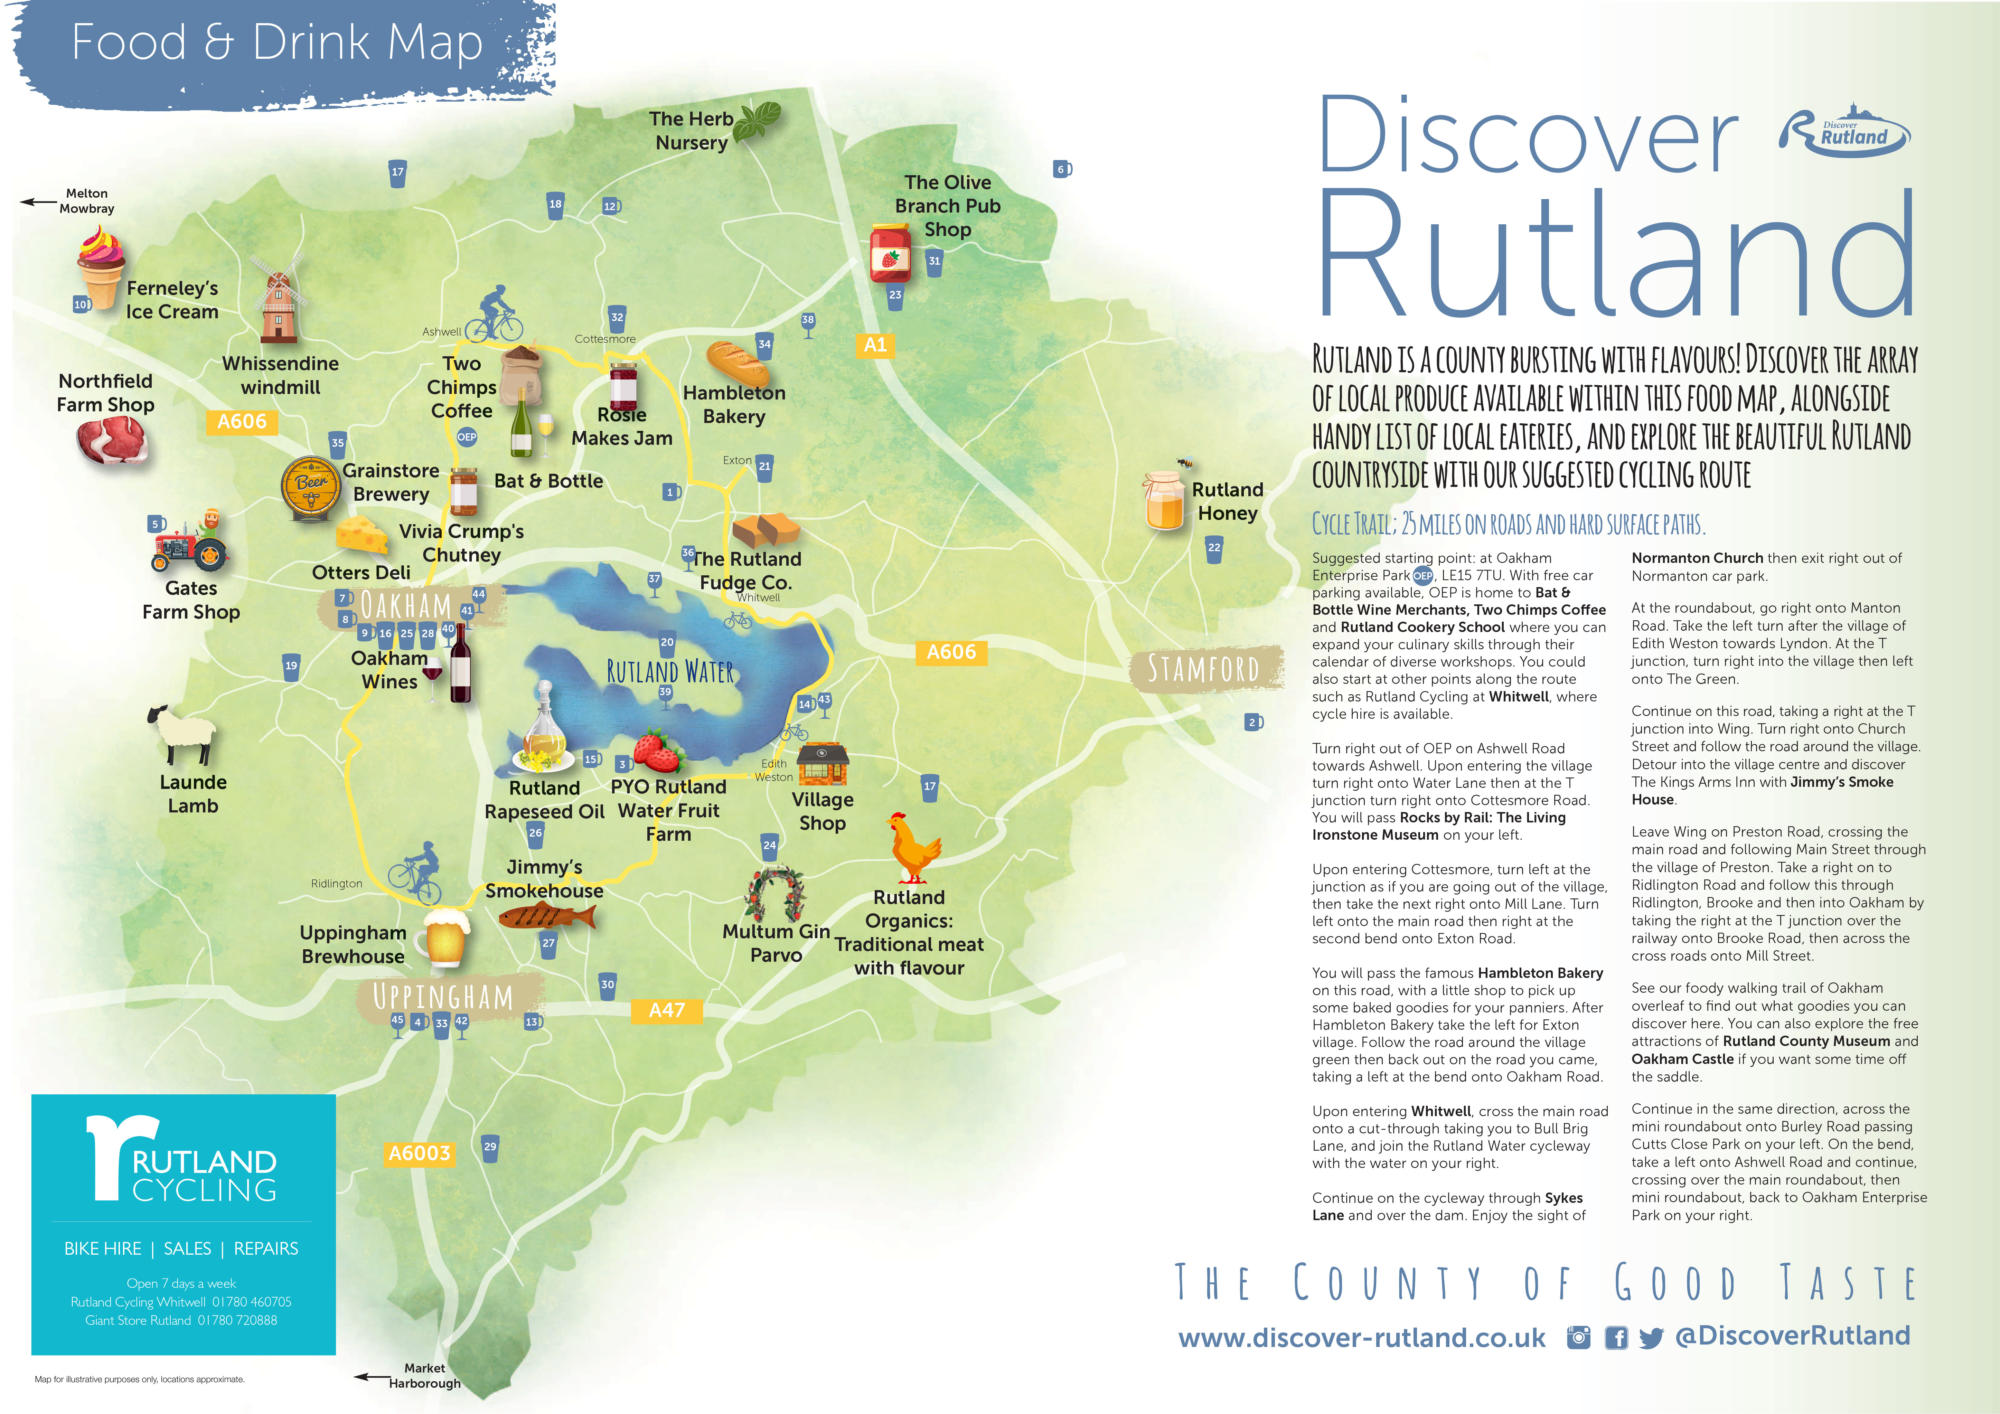 Rutland food and drink trail